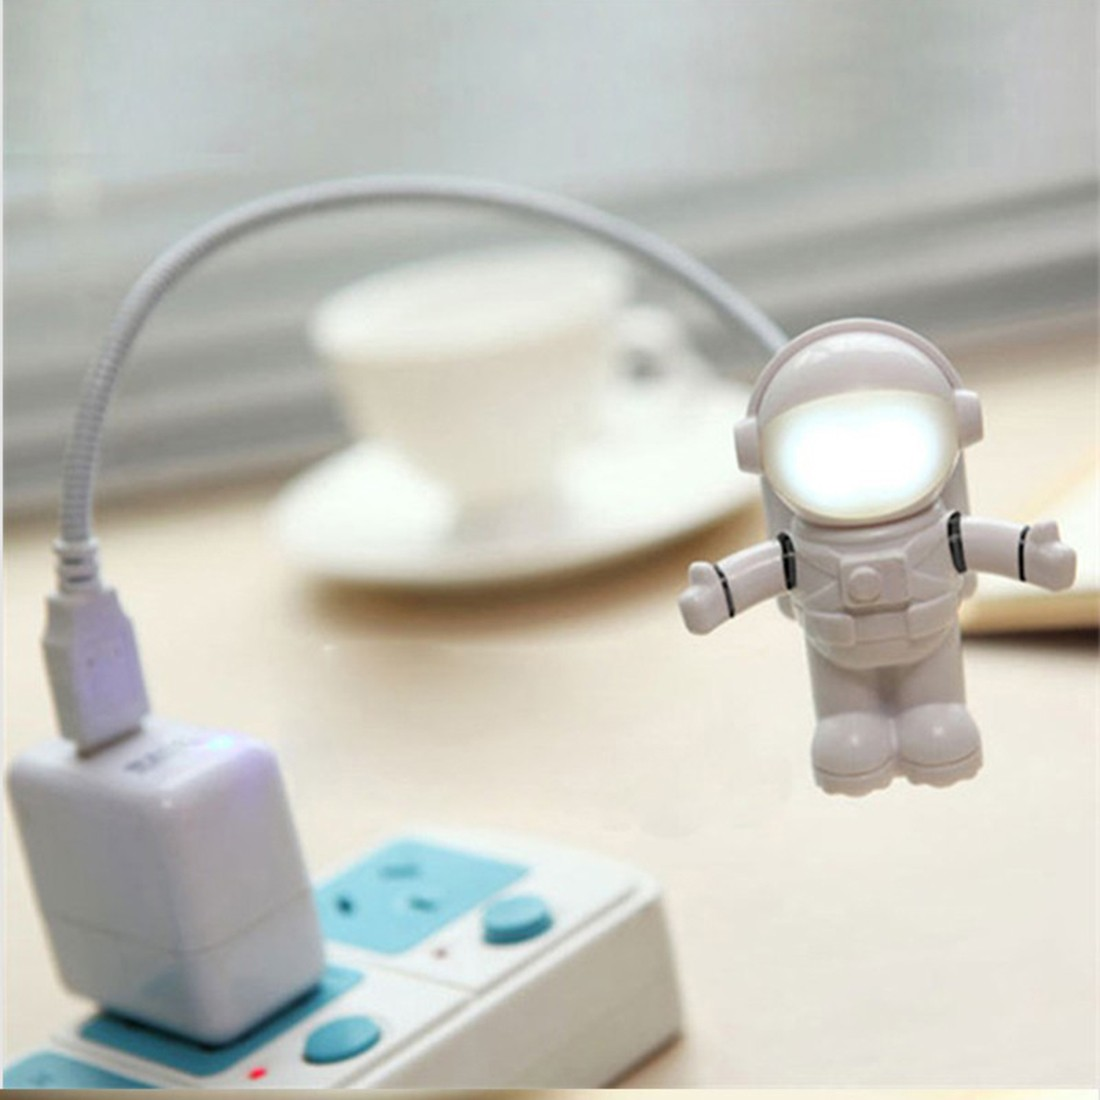 Pure White LED Night Light Astronaut Spaceman USB LED Adjustable Night Light For Computer PC Lamp Desk LightPure White LED Night Light Astronaut Spaceman USB LED Adjustable Night Light For Computer PC Lamp Desk Light